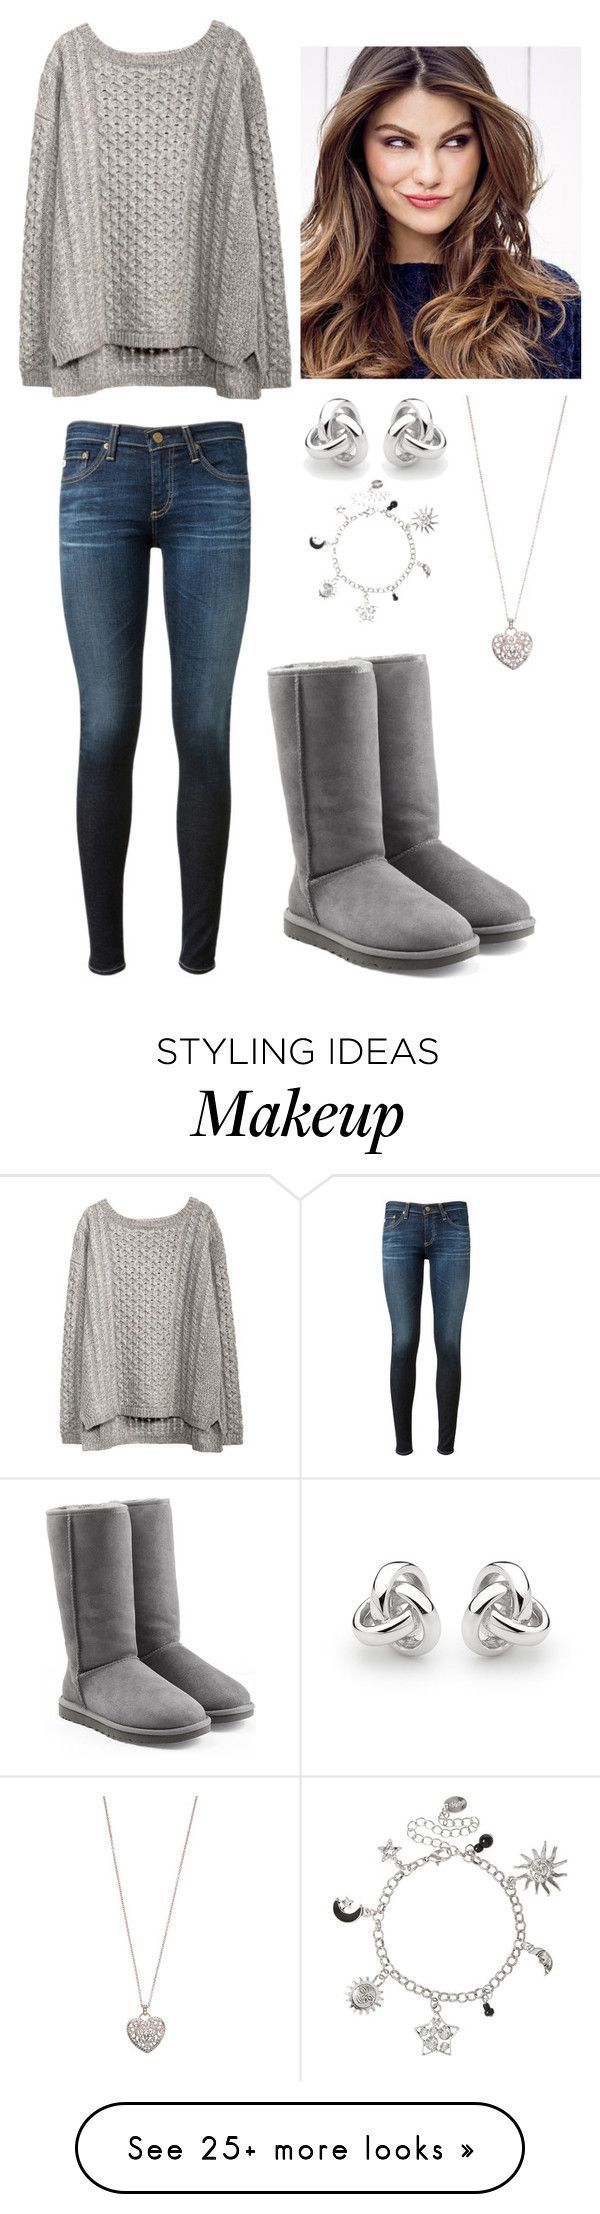 """Bonfire Night (:"" by bailee-givens on Polyvore featuring AG Adriano Goldschmied, Georgini, Accessorize, UGG Australia and ULTA"